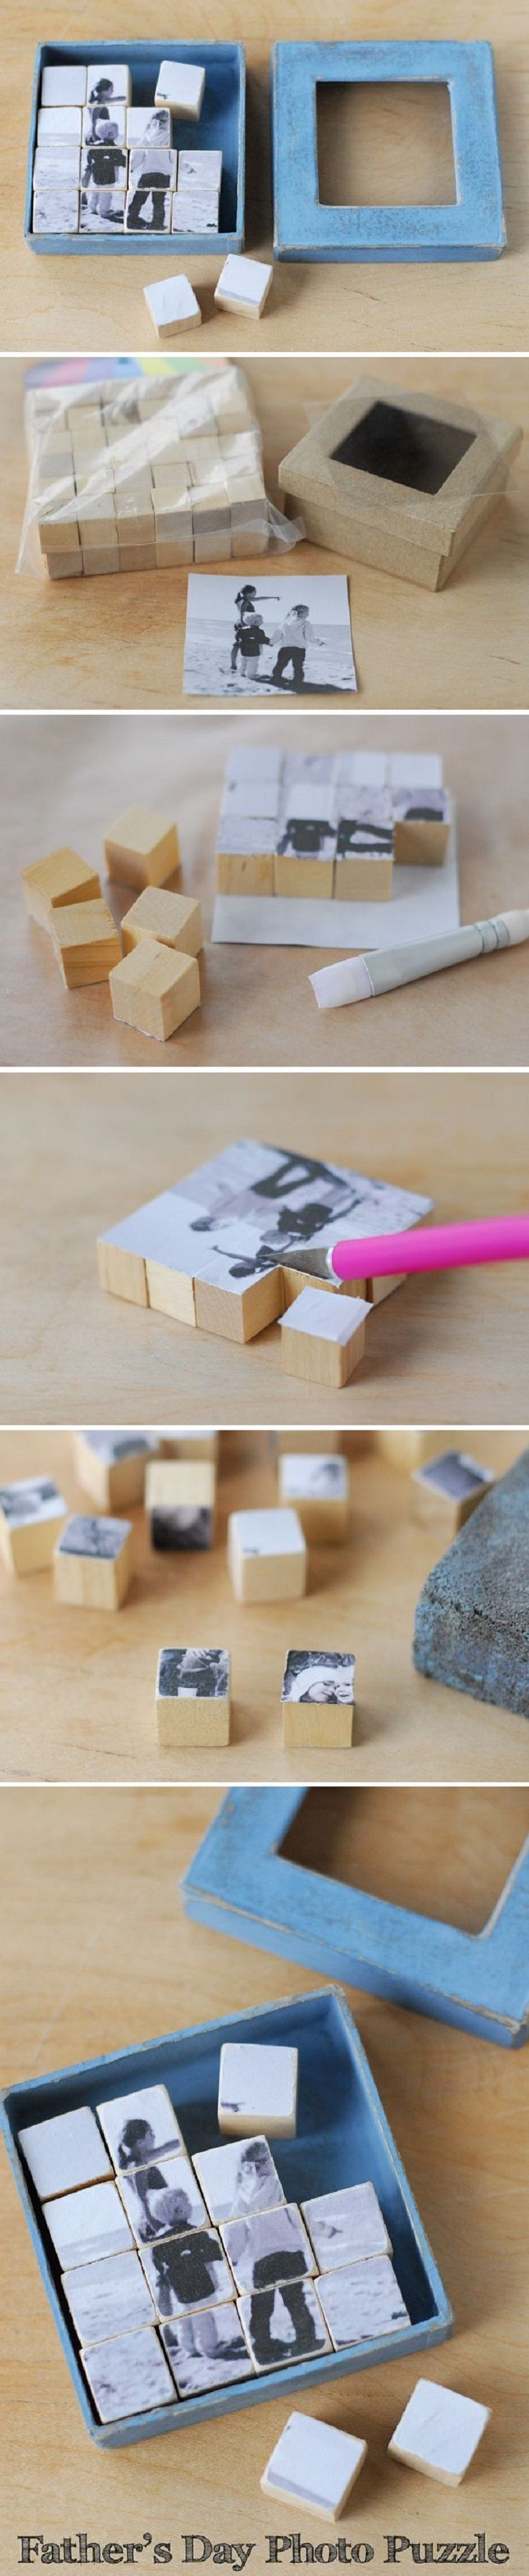 Fathers Day Photo Puzzle Gift - 16 Soft-Hearted DIY Father's Day Gifts | GleamItUp